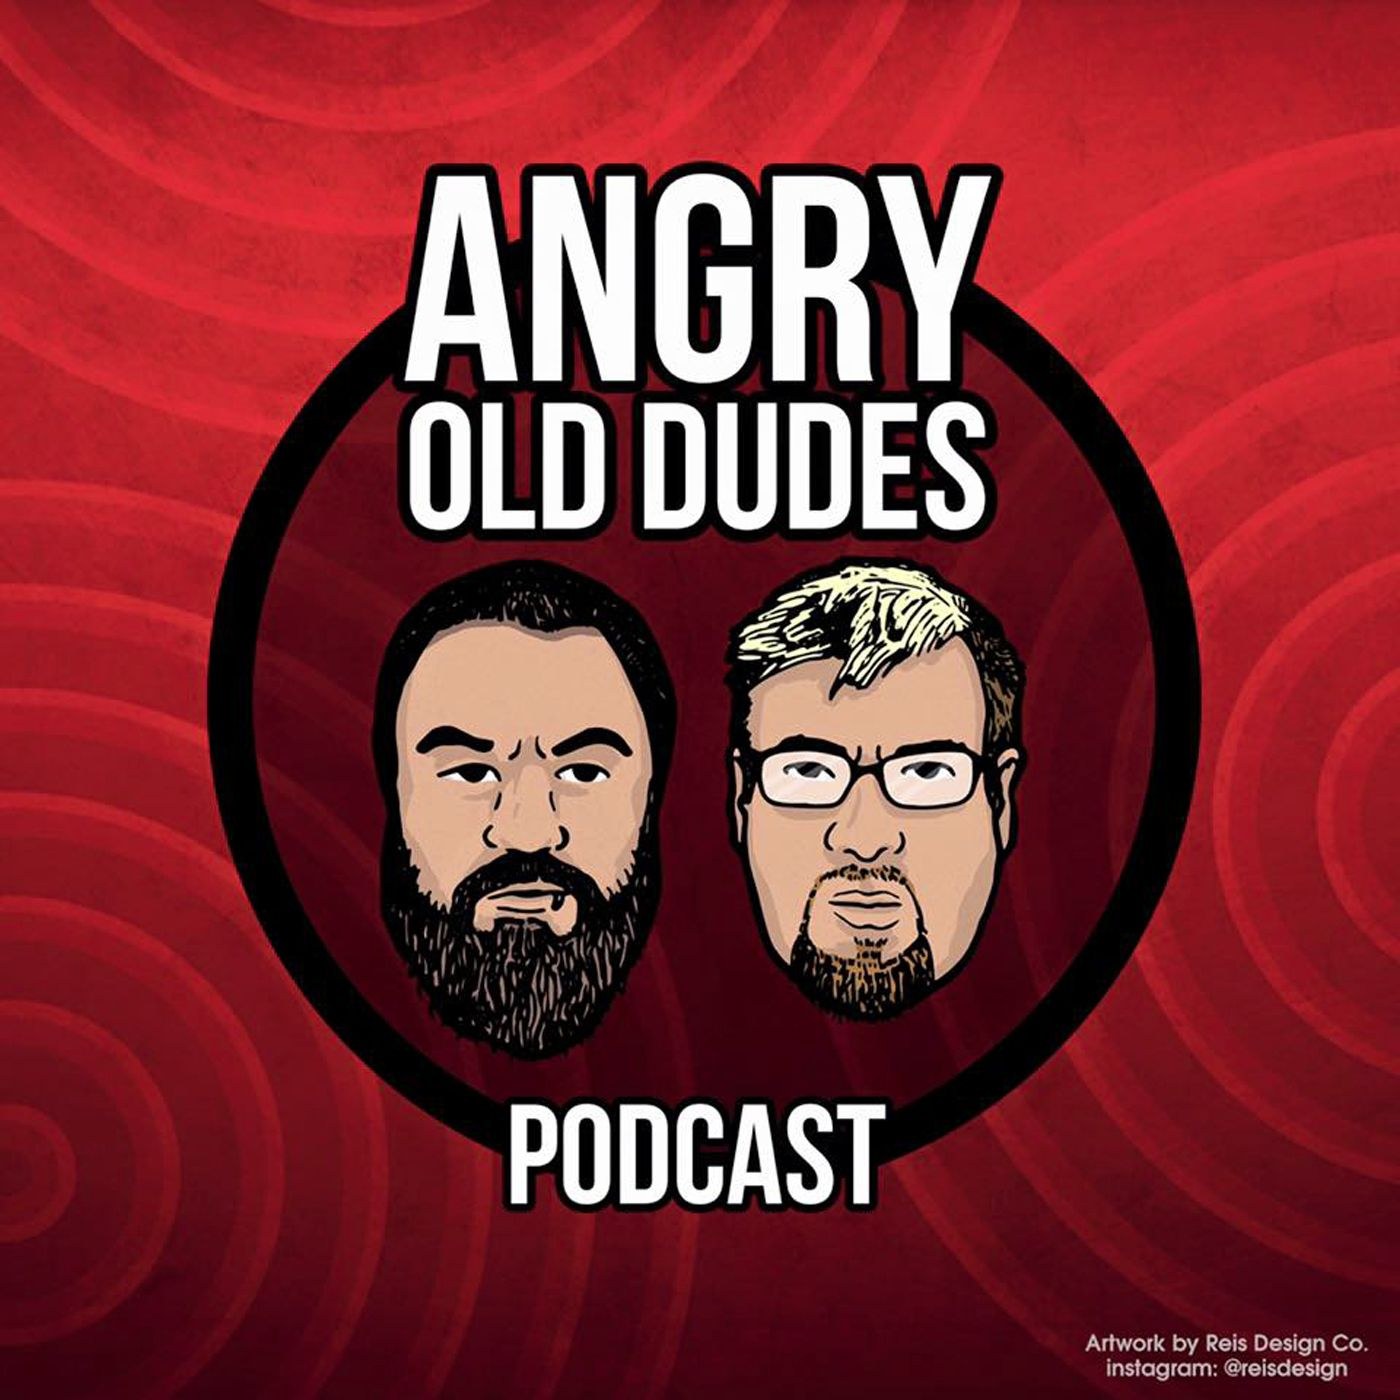 Angry Old Dudes Podcast